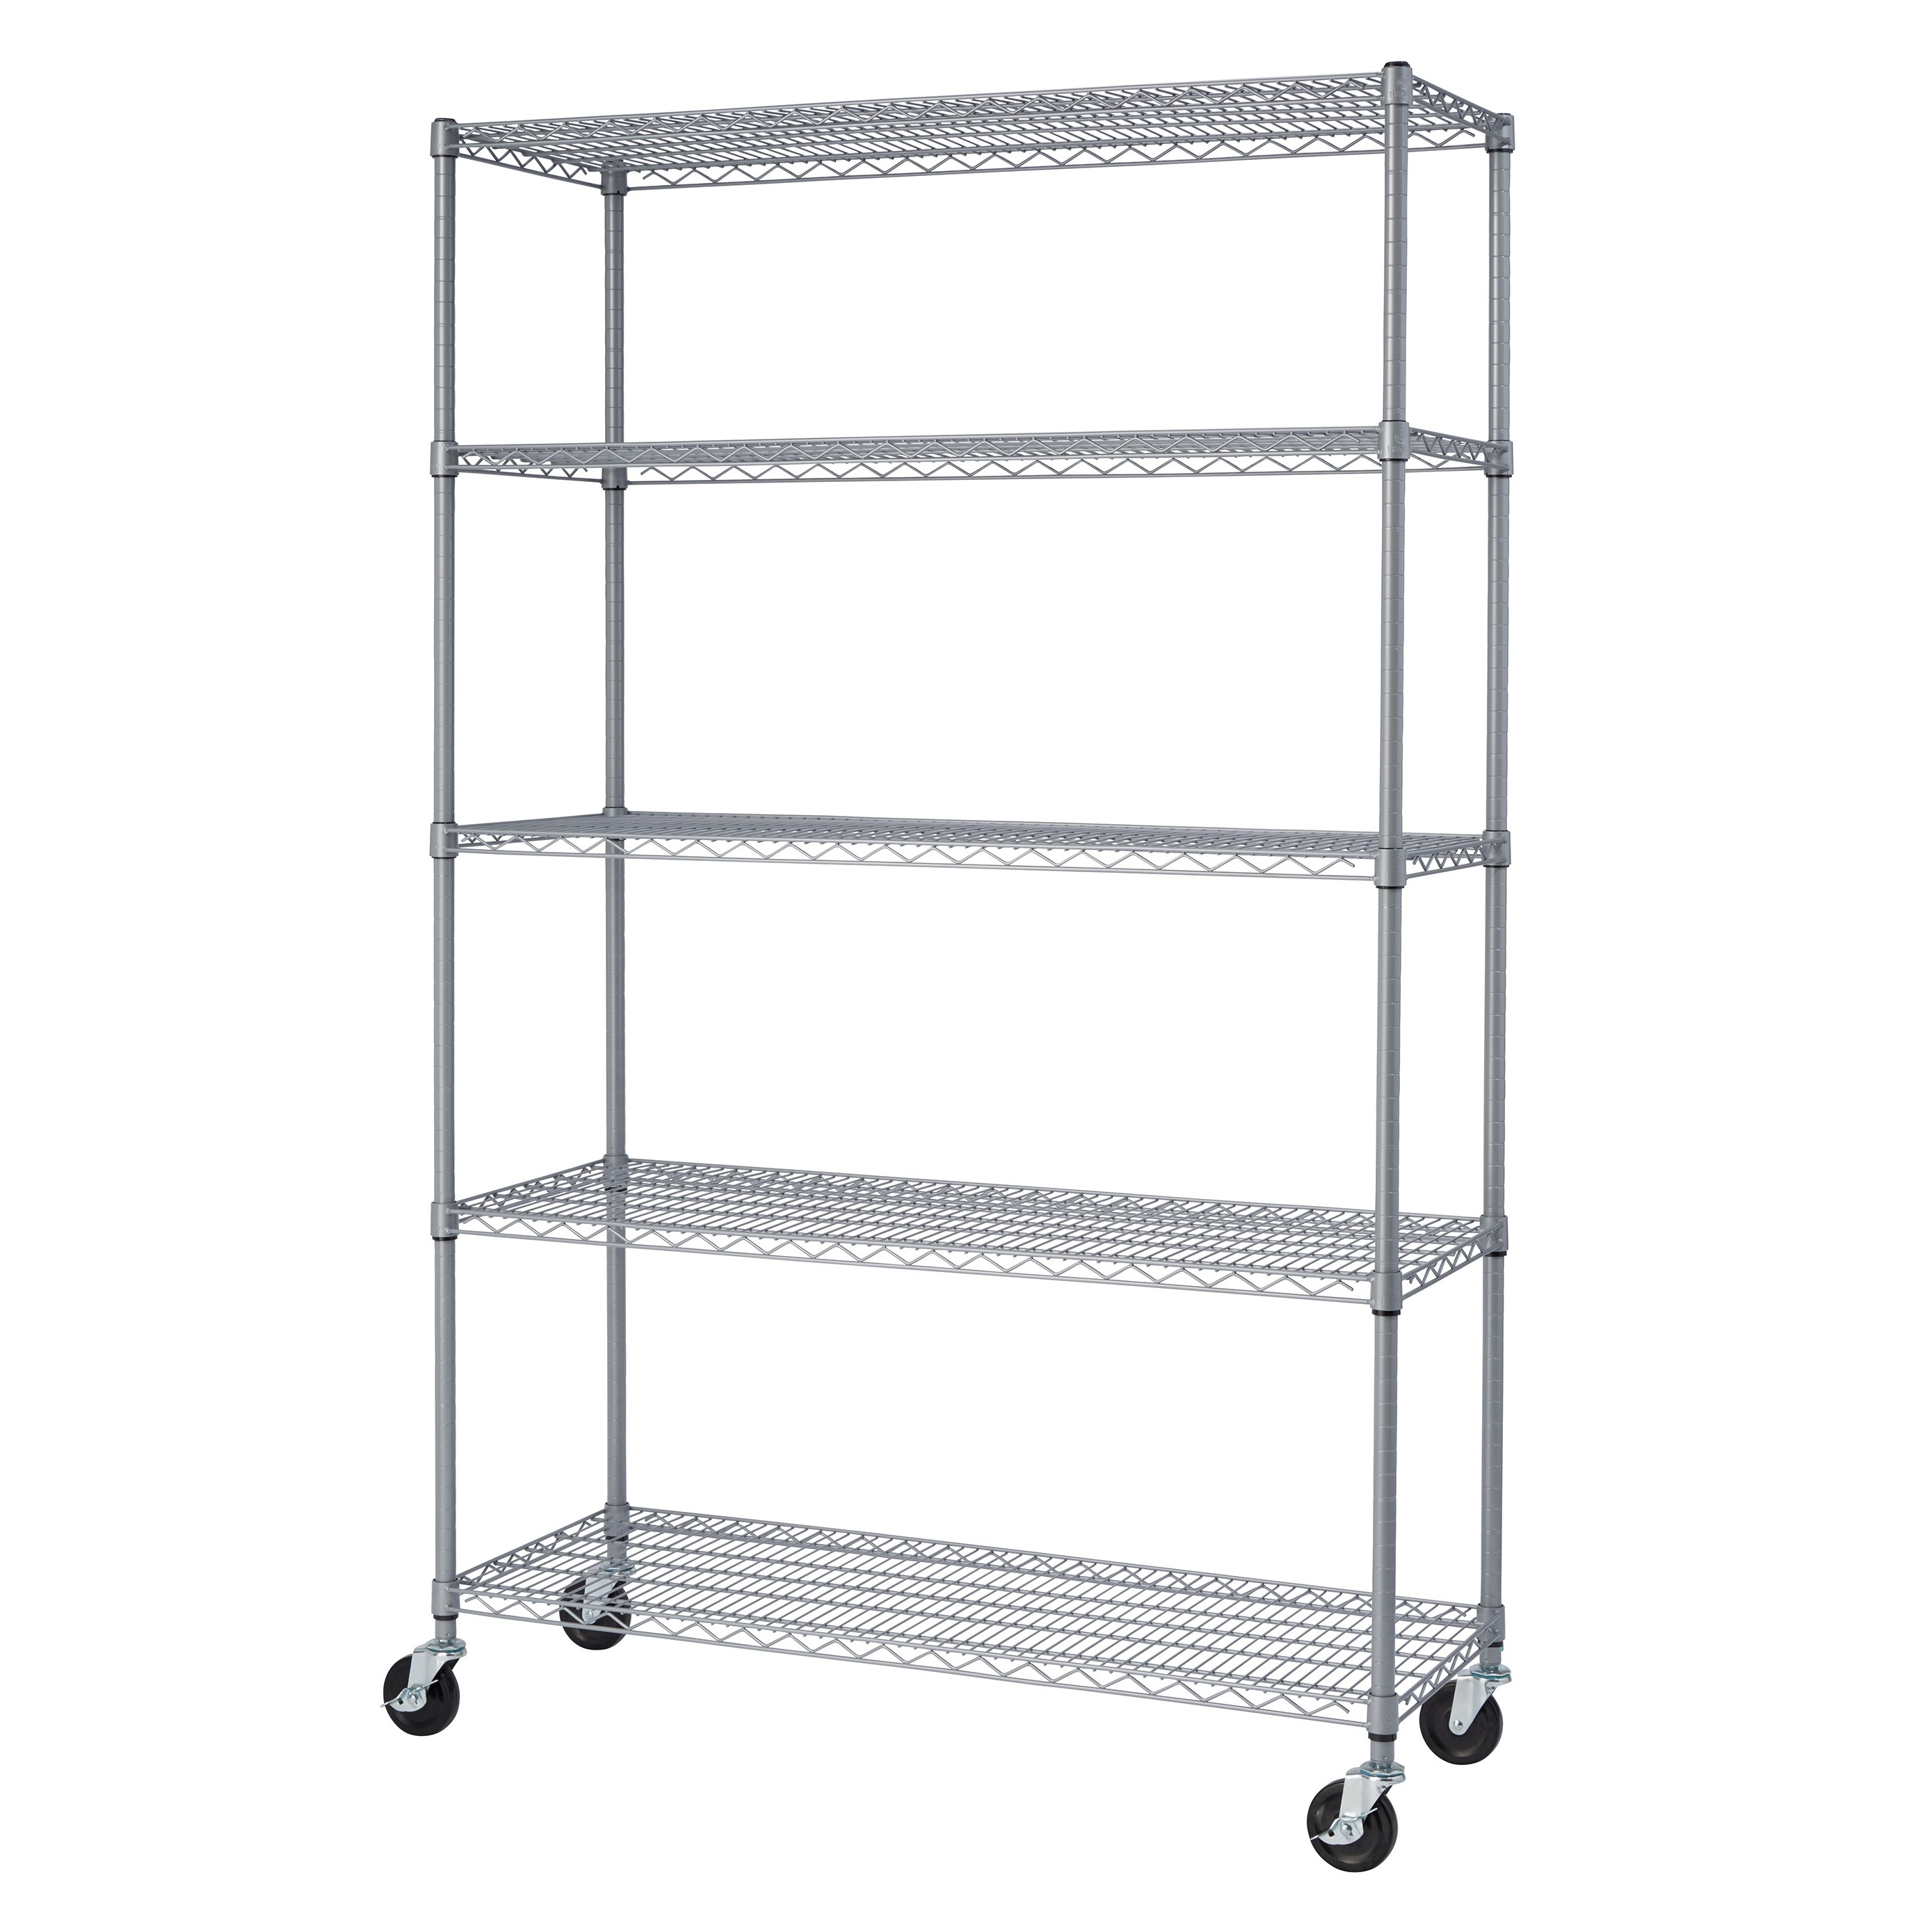 Shop Trinity NSF Adjustable 5-Tier Outdoor Wire Shelving Rack - Free ...